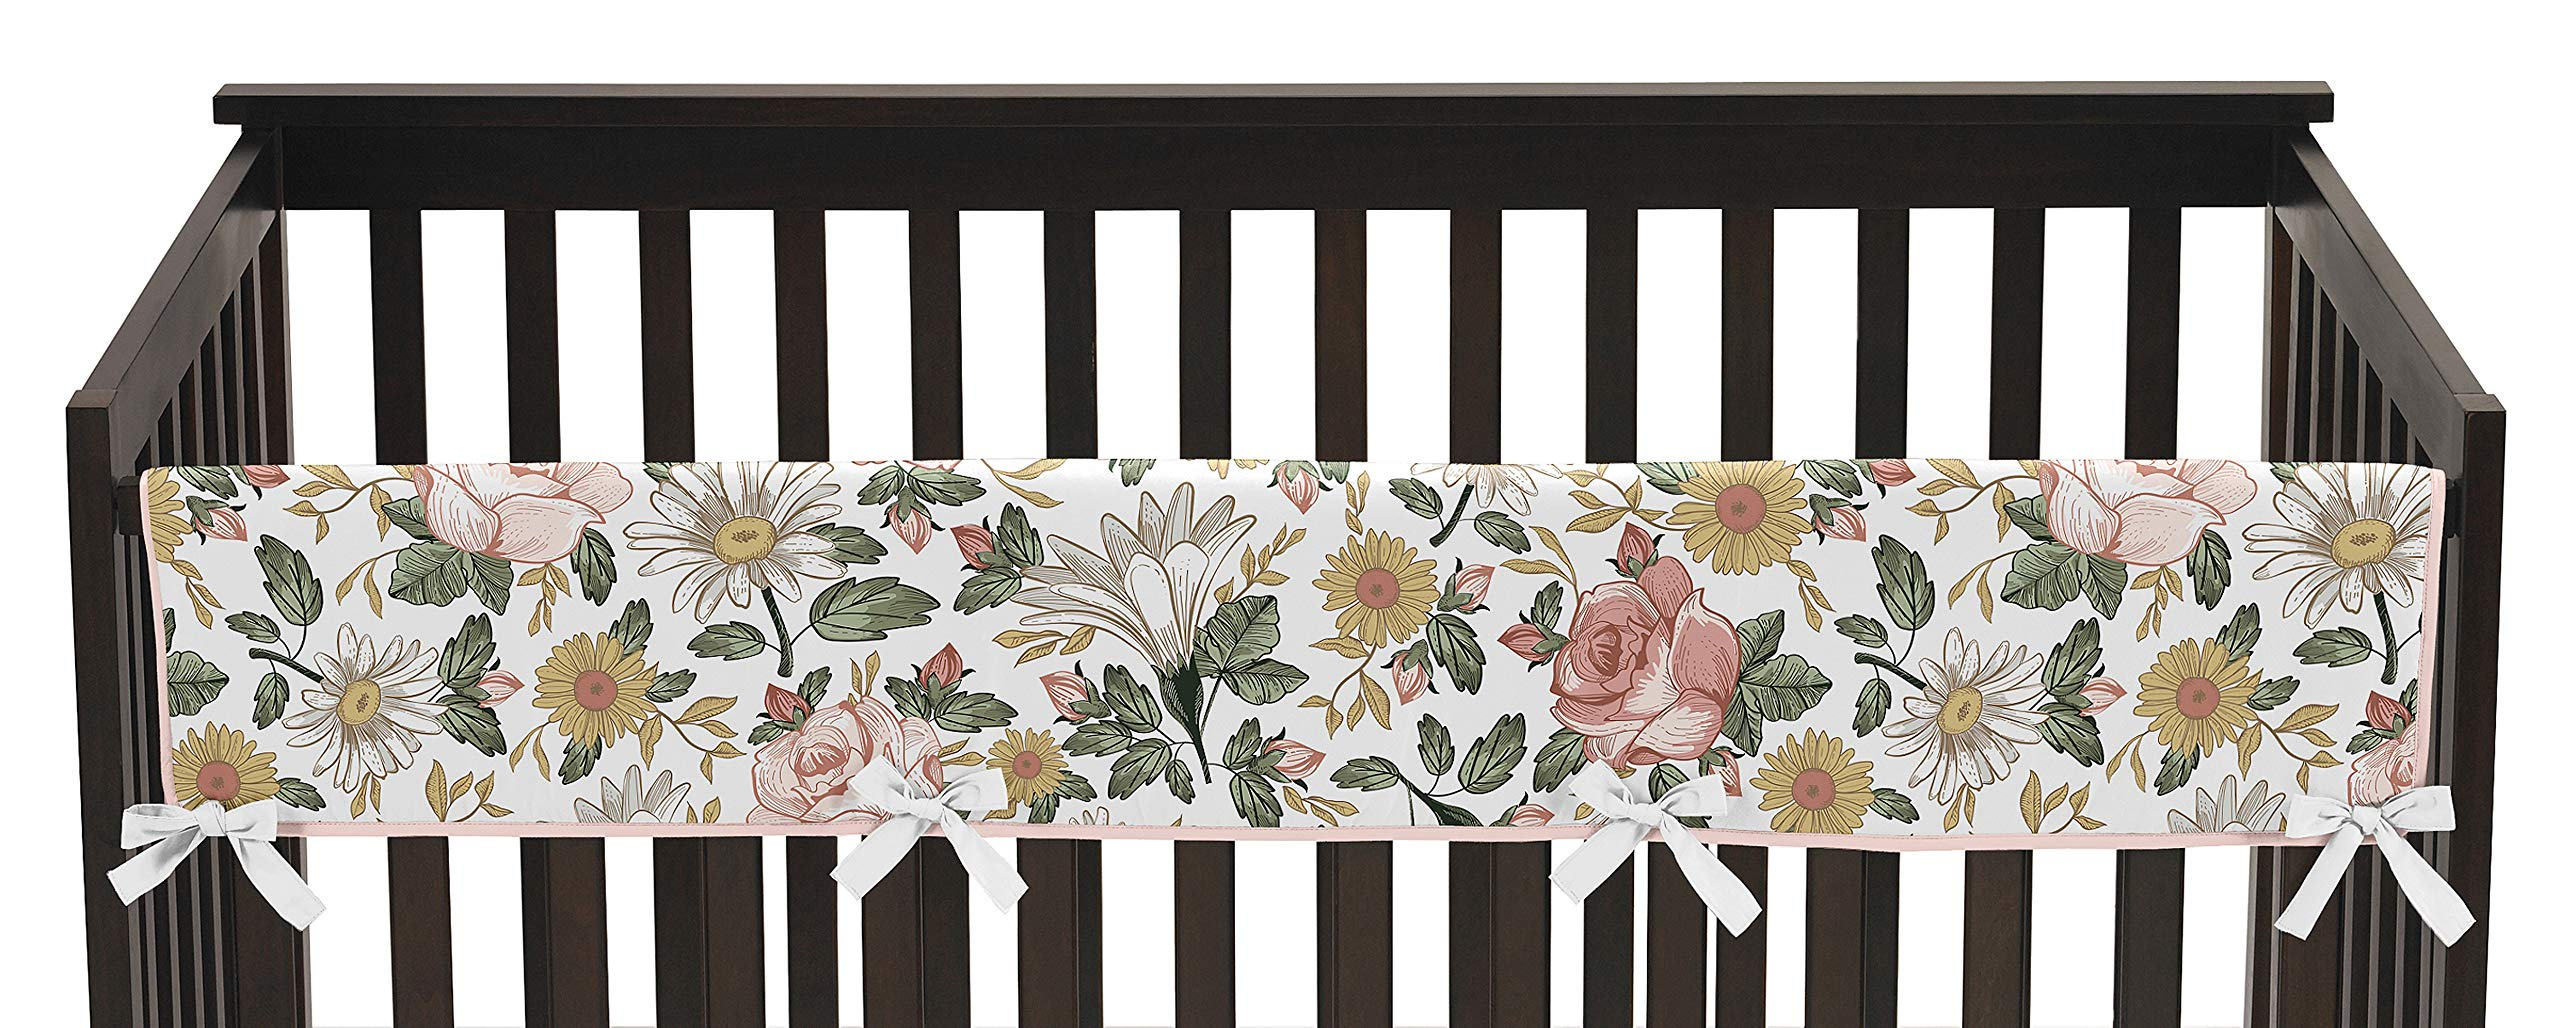 Sweet Jojo Designs Vintage Floral Boho Girl Long Front Crib Rail Guard Baby Teething Cover Protector Wrap - Blush Pink, Yellow, Green and White Shabby Chic Rose Flower Farmhouse